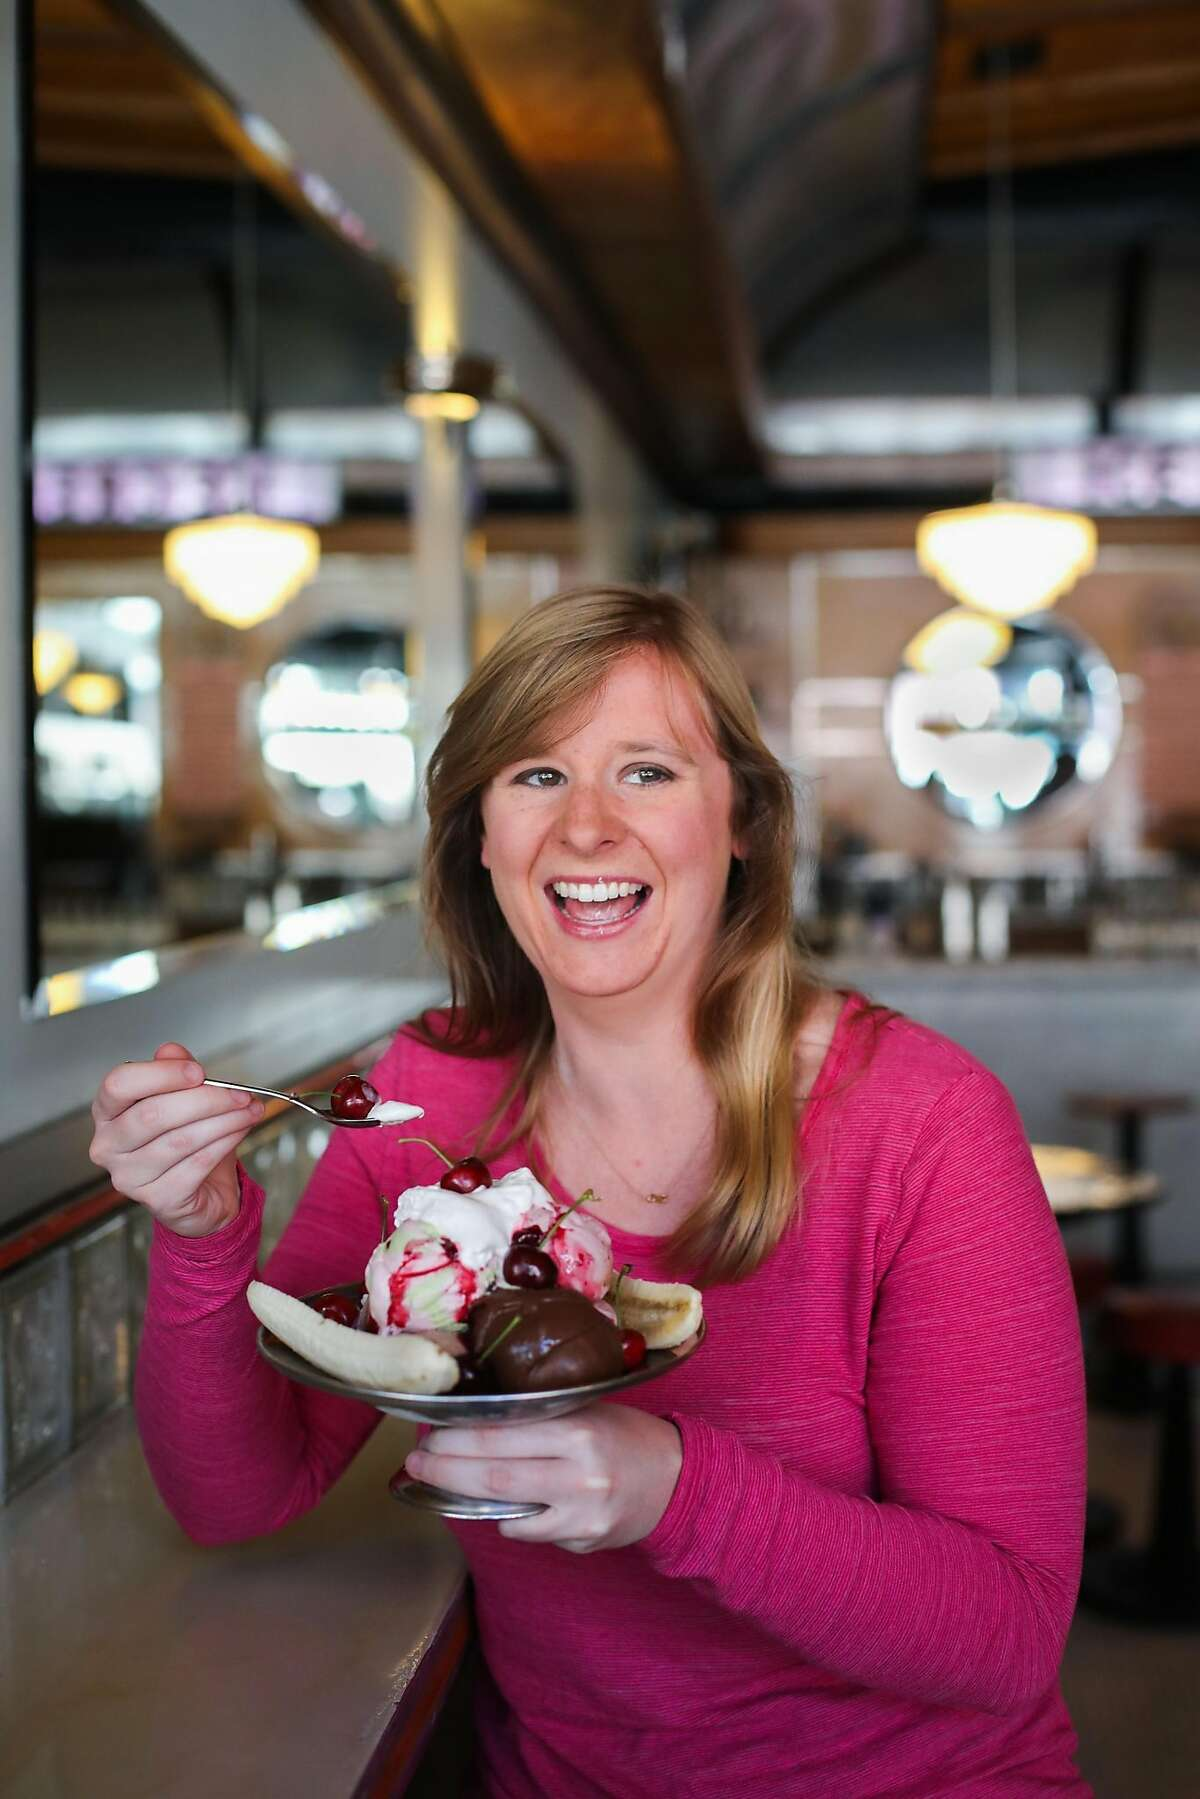 Brianna Rader, CEO of Juicebox, a sex education app, sits for a portrait while eating an ice cream sundae at the Ice Cream Bar in Cole Valley, in San Francisco, California, on Tuesday, May 17, 2016.